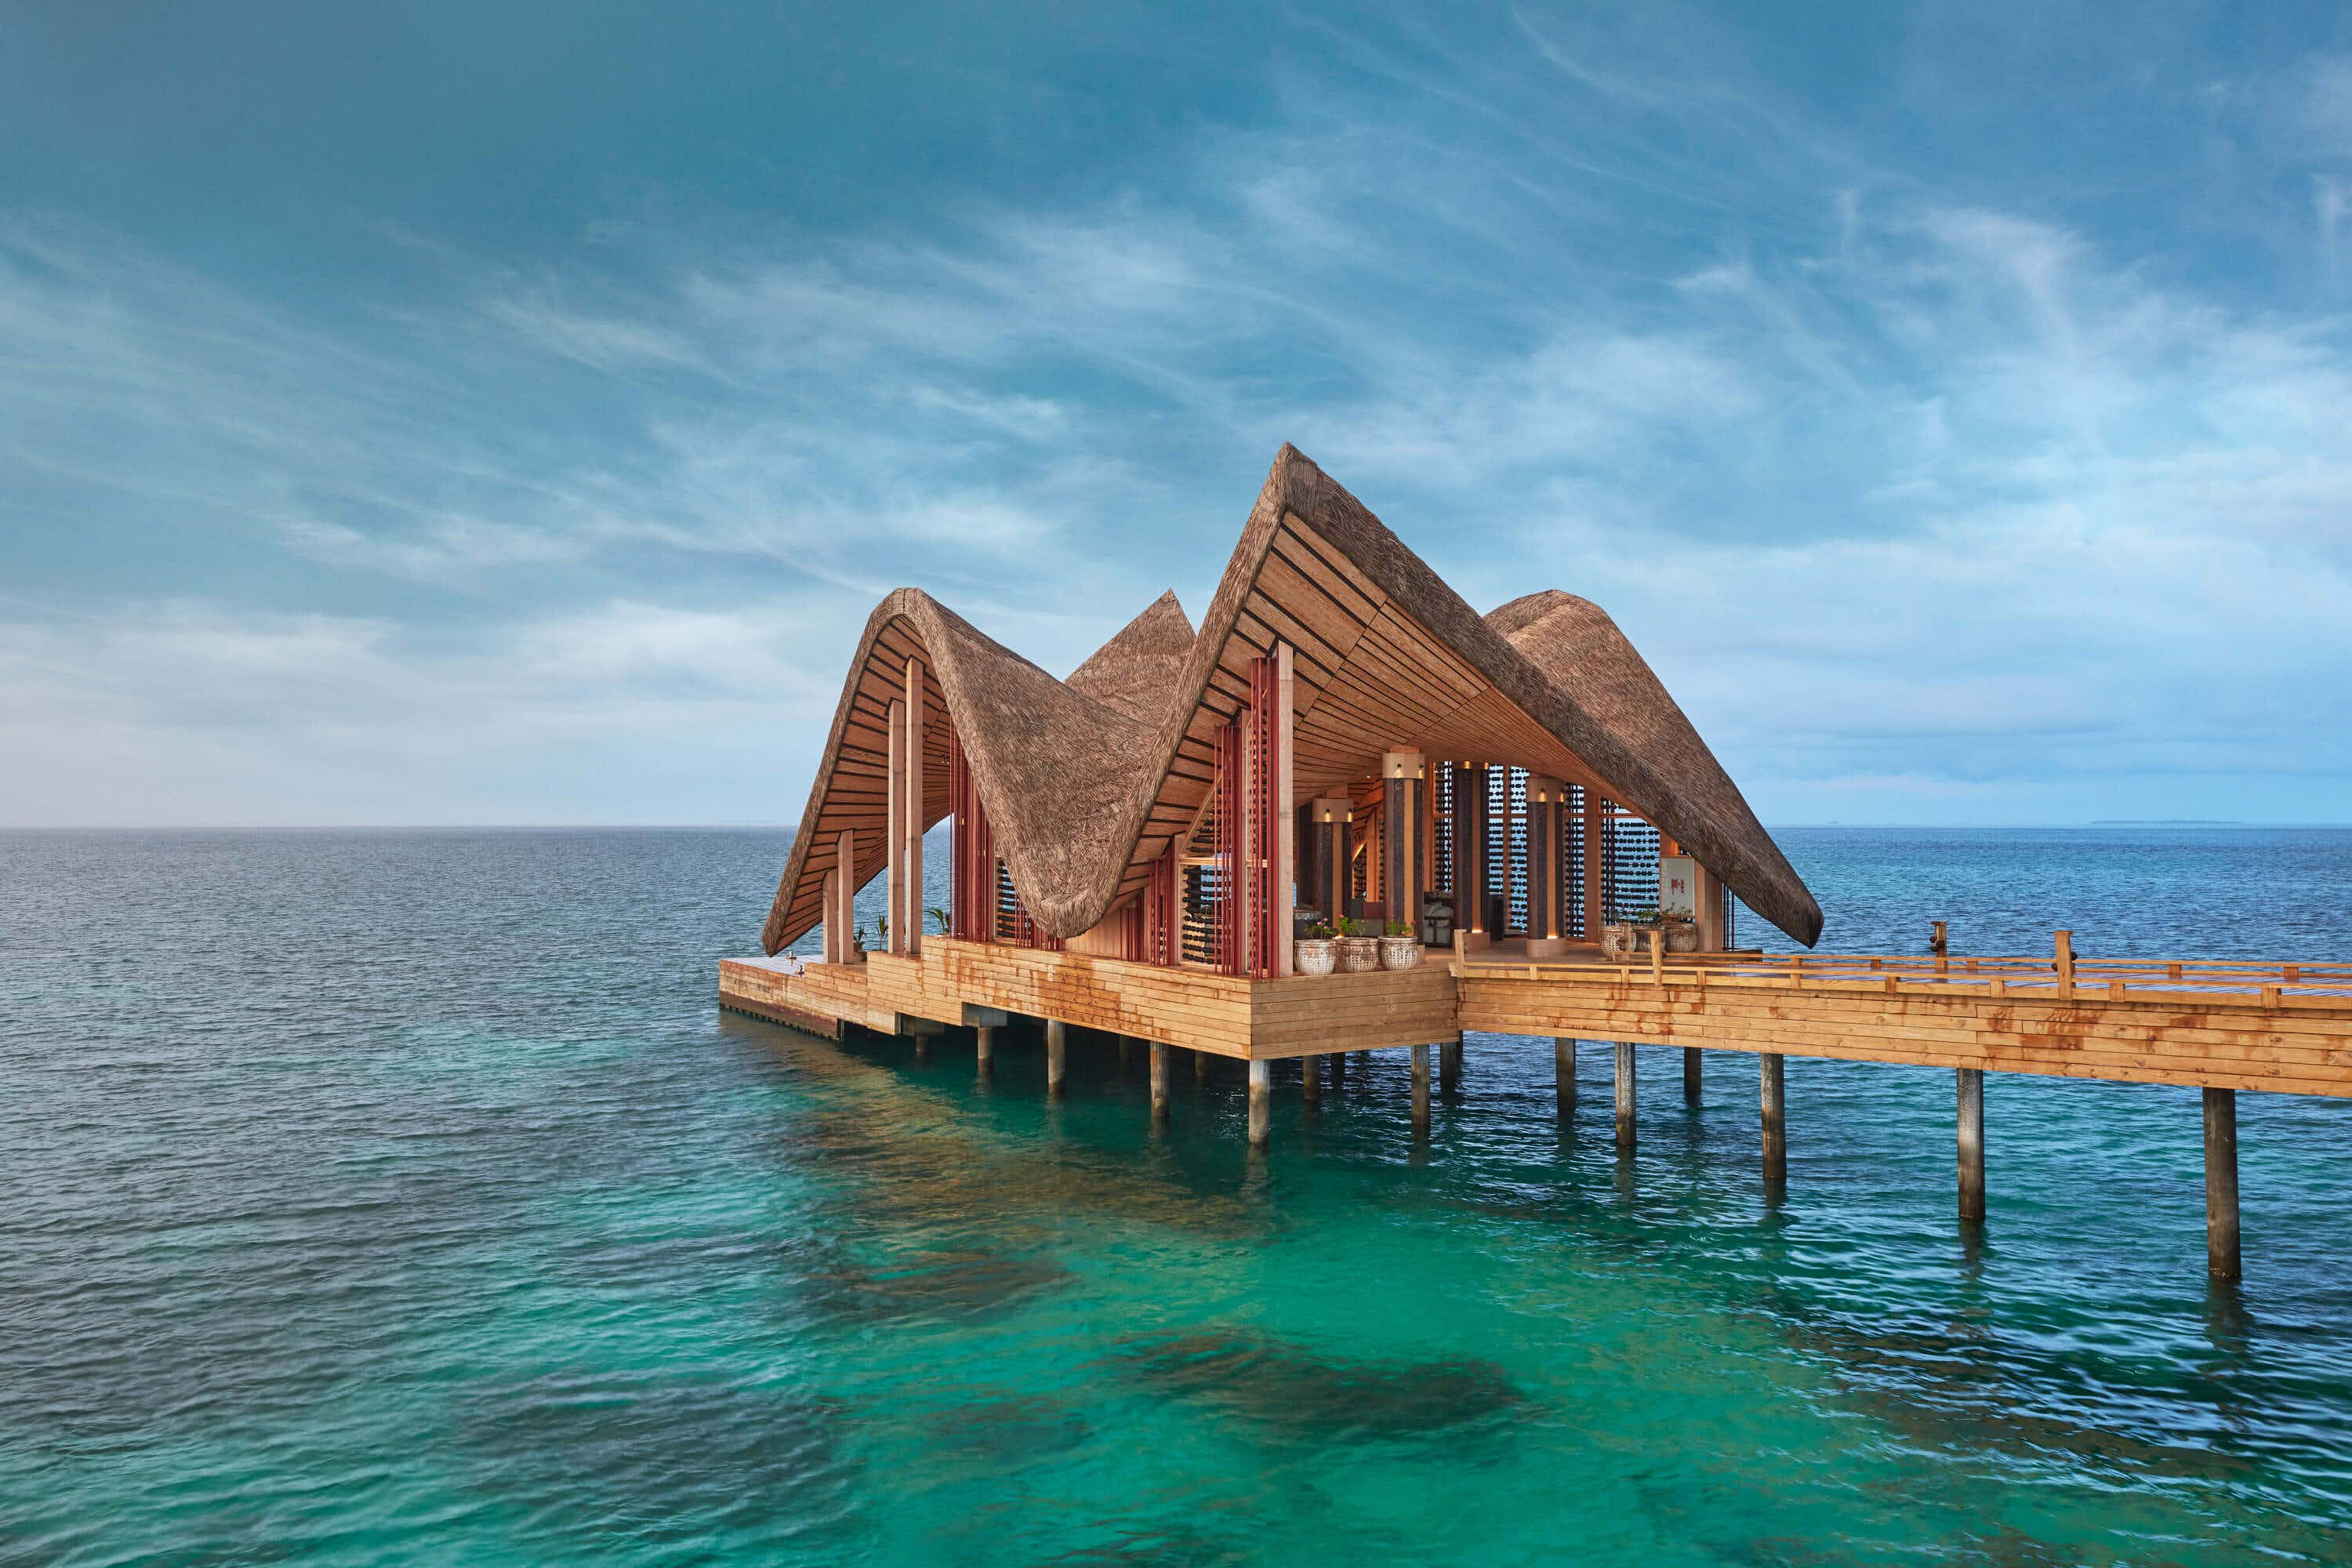 The first art-immersive luxury retreat has opened in the Maldives